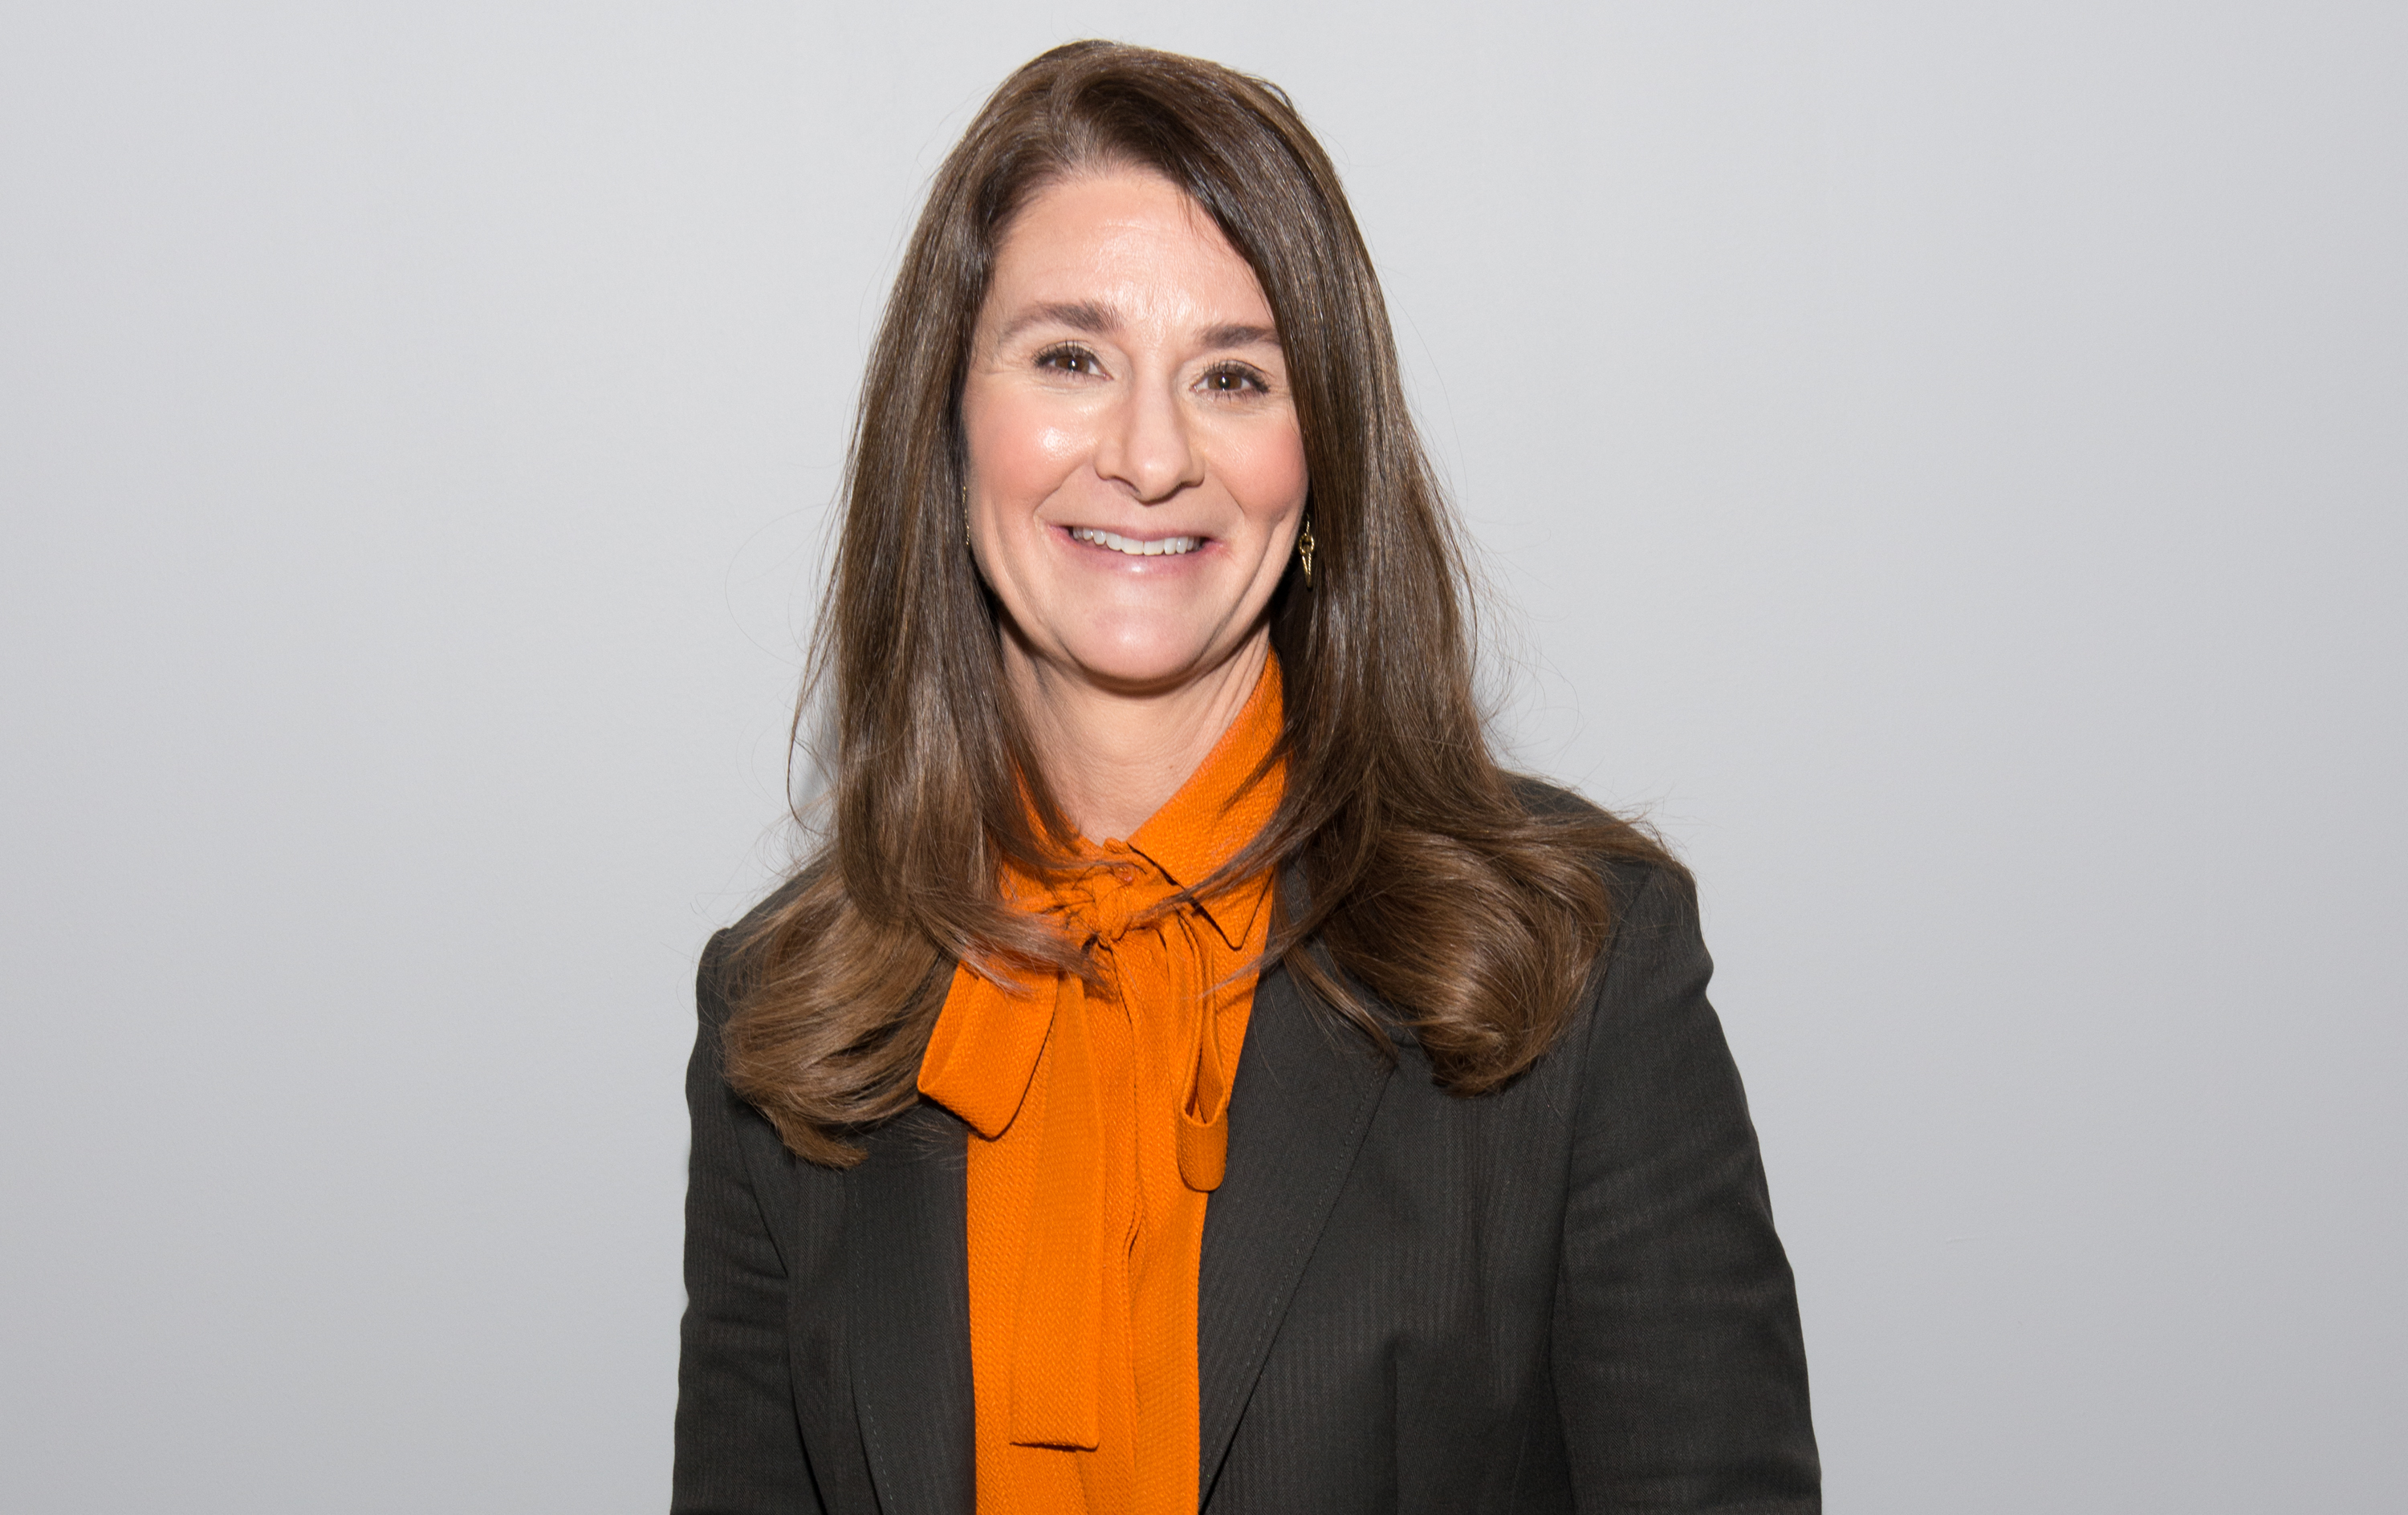 NEW YORK, NY - MARCH 10:  Co-chair of the Bill and Melinda Gates Foundation Melinda Gates attends the AOL BUILD Speaker Series at AOL Studios In New York on March 10, 2015 in New York City.  (Photo by Noam Galai/WireImage)